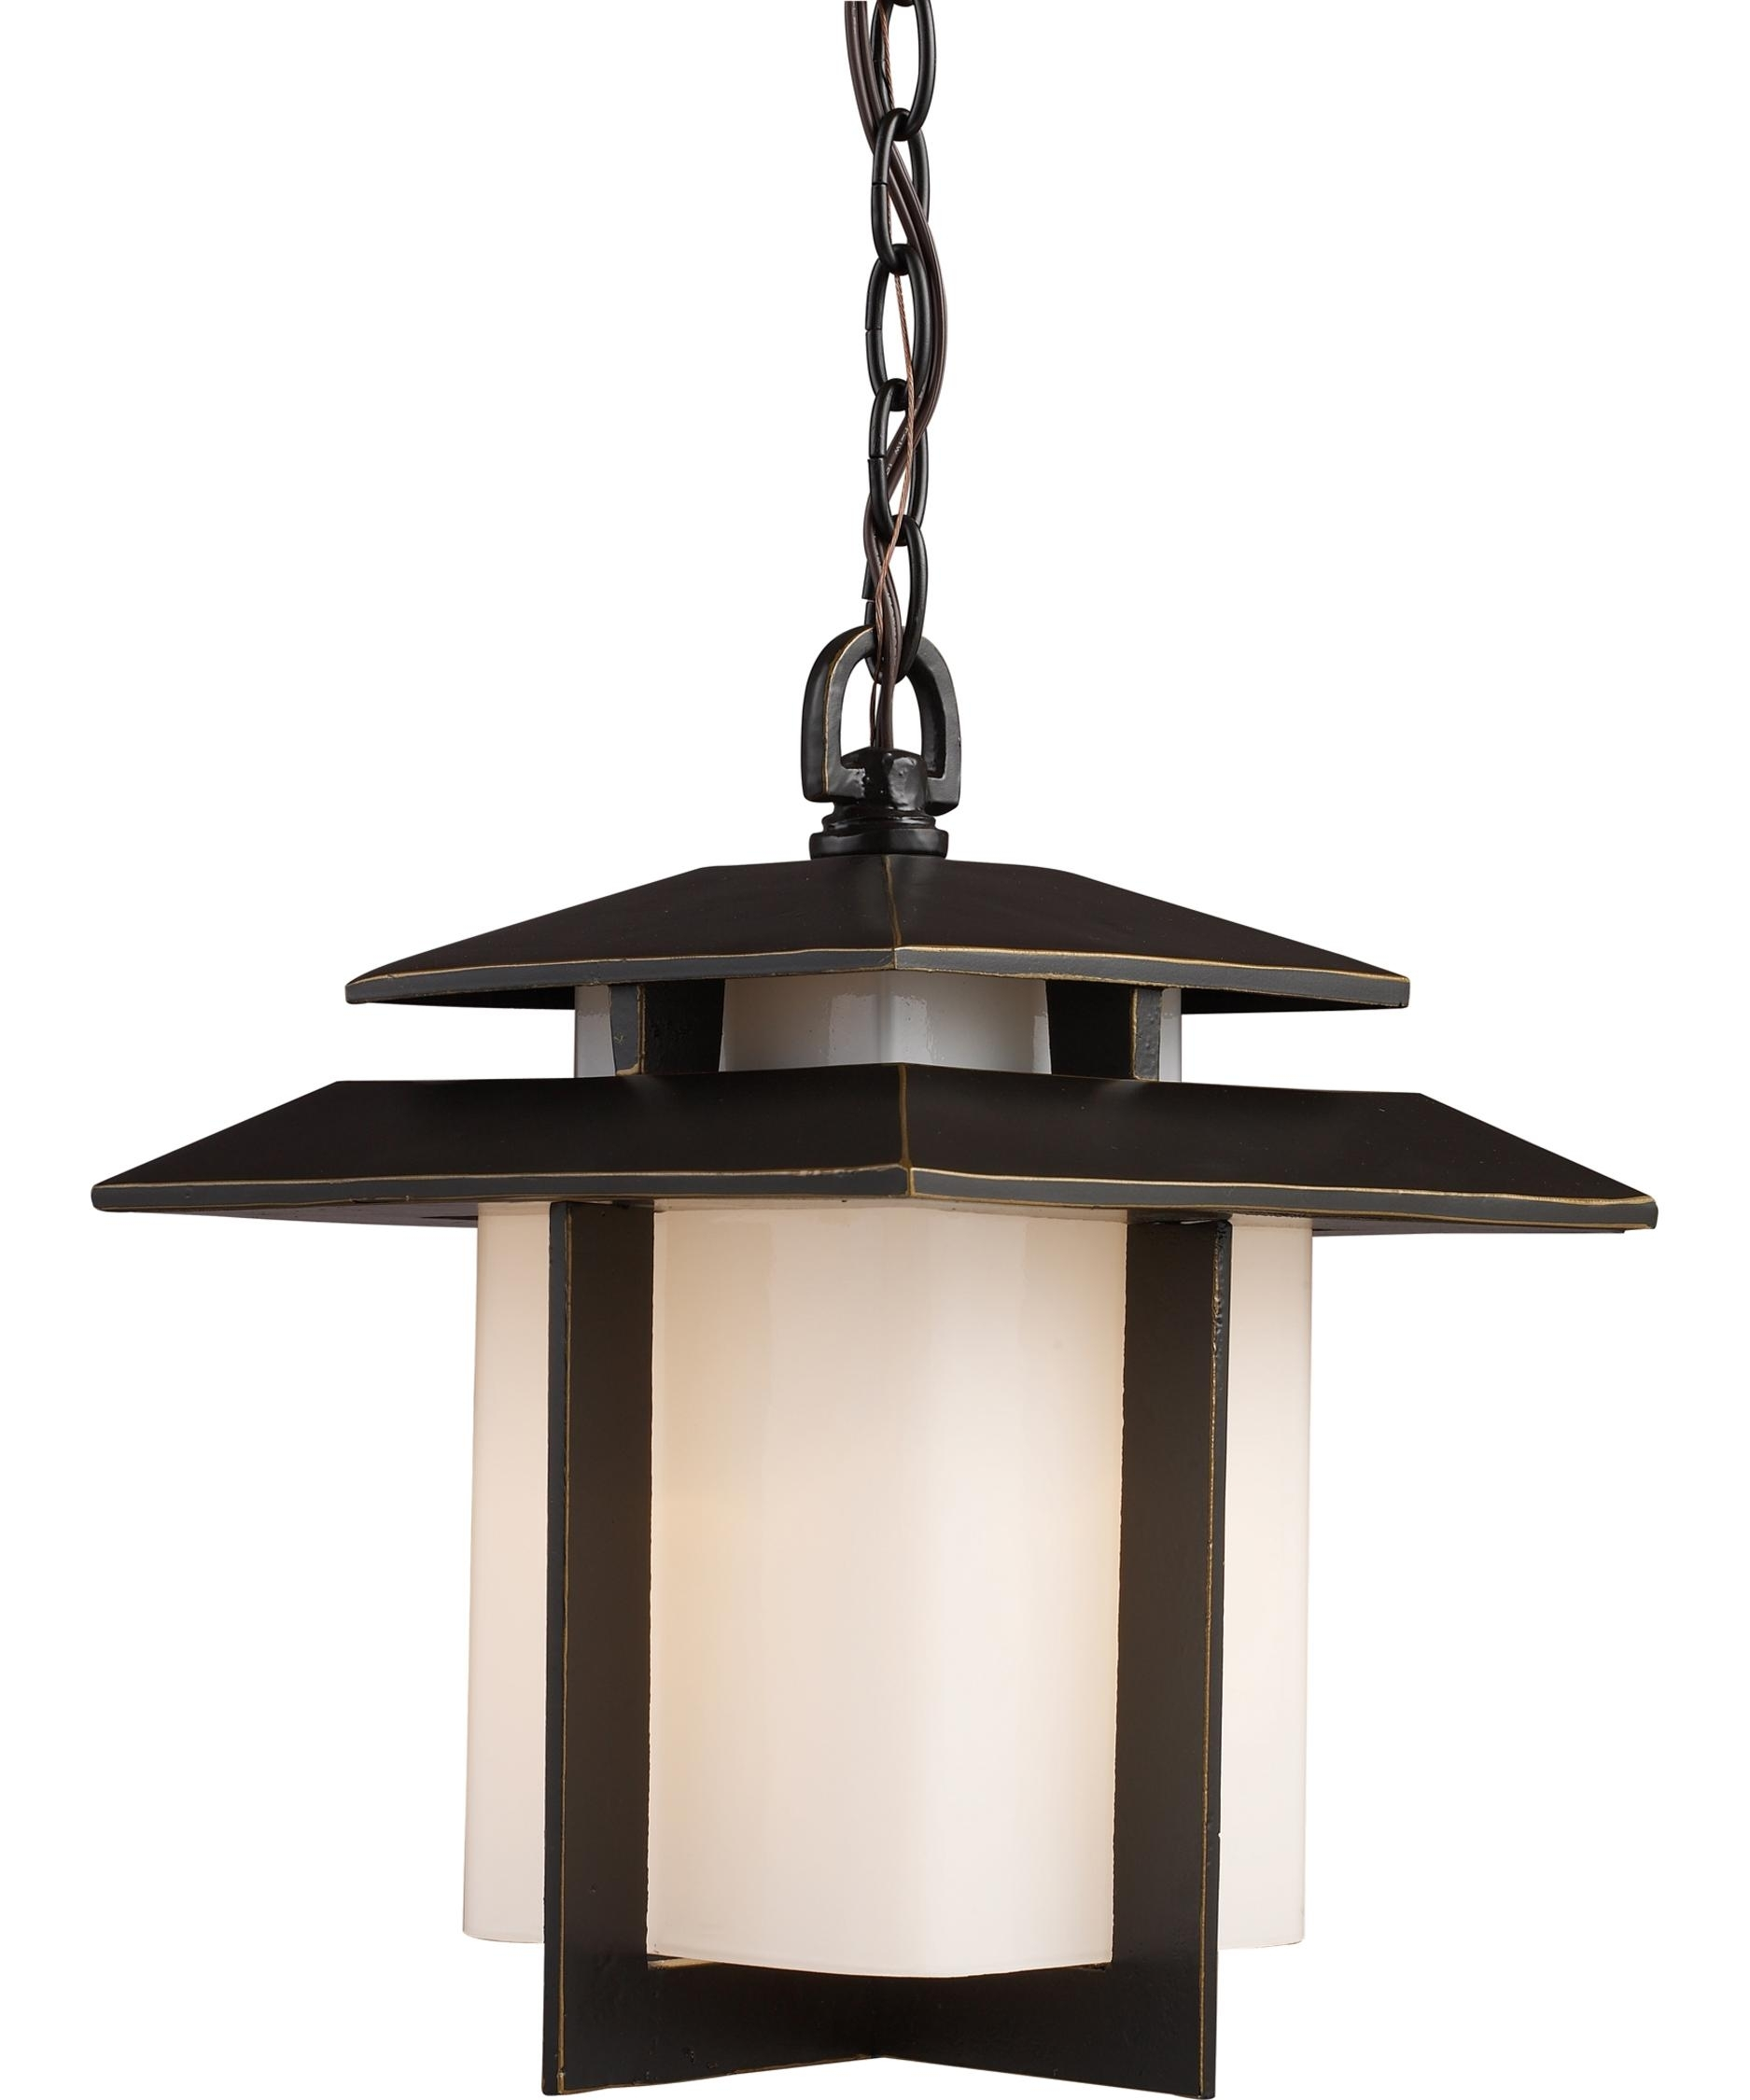 Light : Outdoor Lighting Ideas Without Electricity Exterior Fixtures Inside Electric Outdoor Hanging Lanterns (#7 of 15)